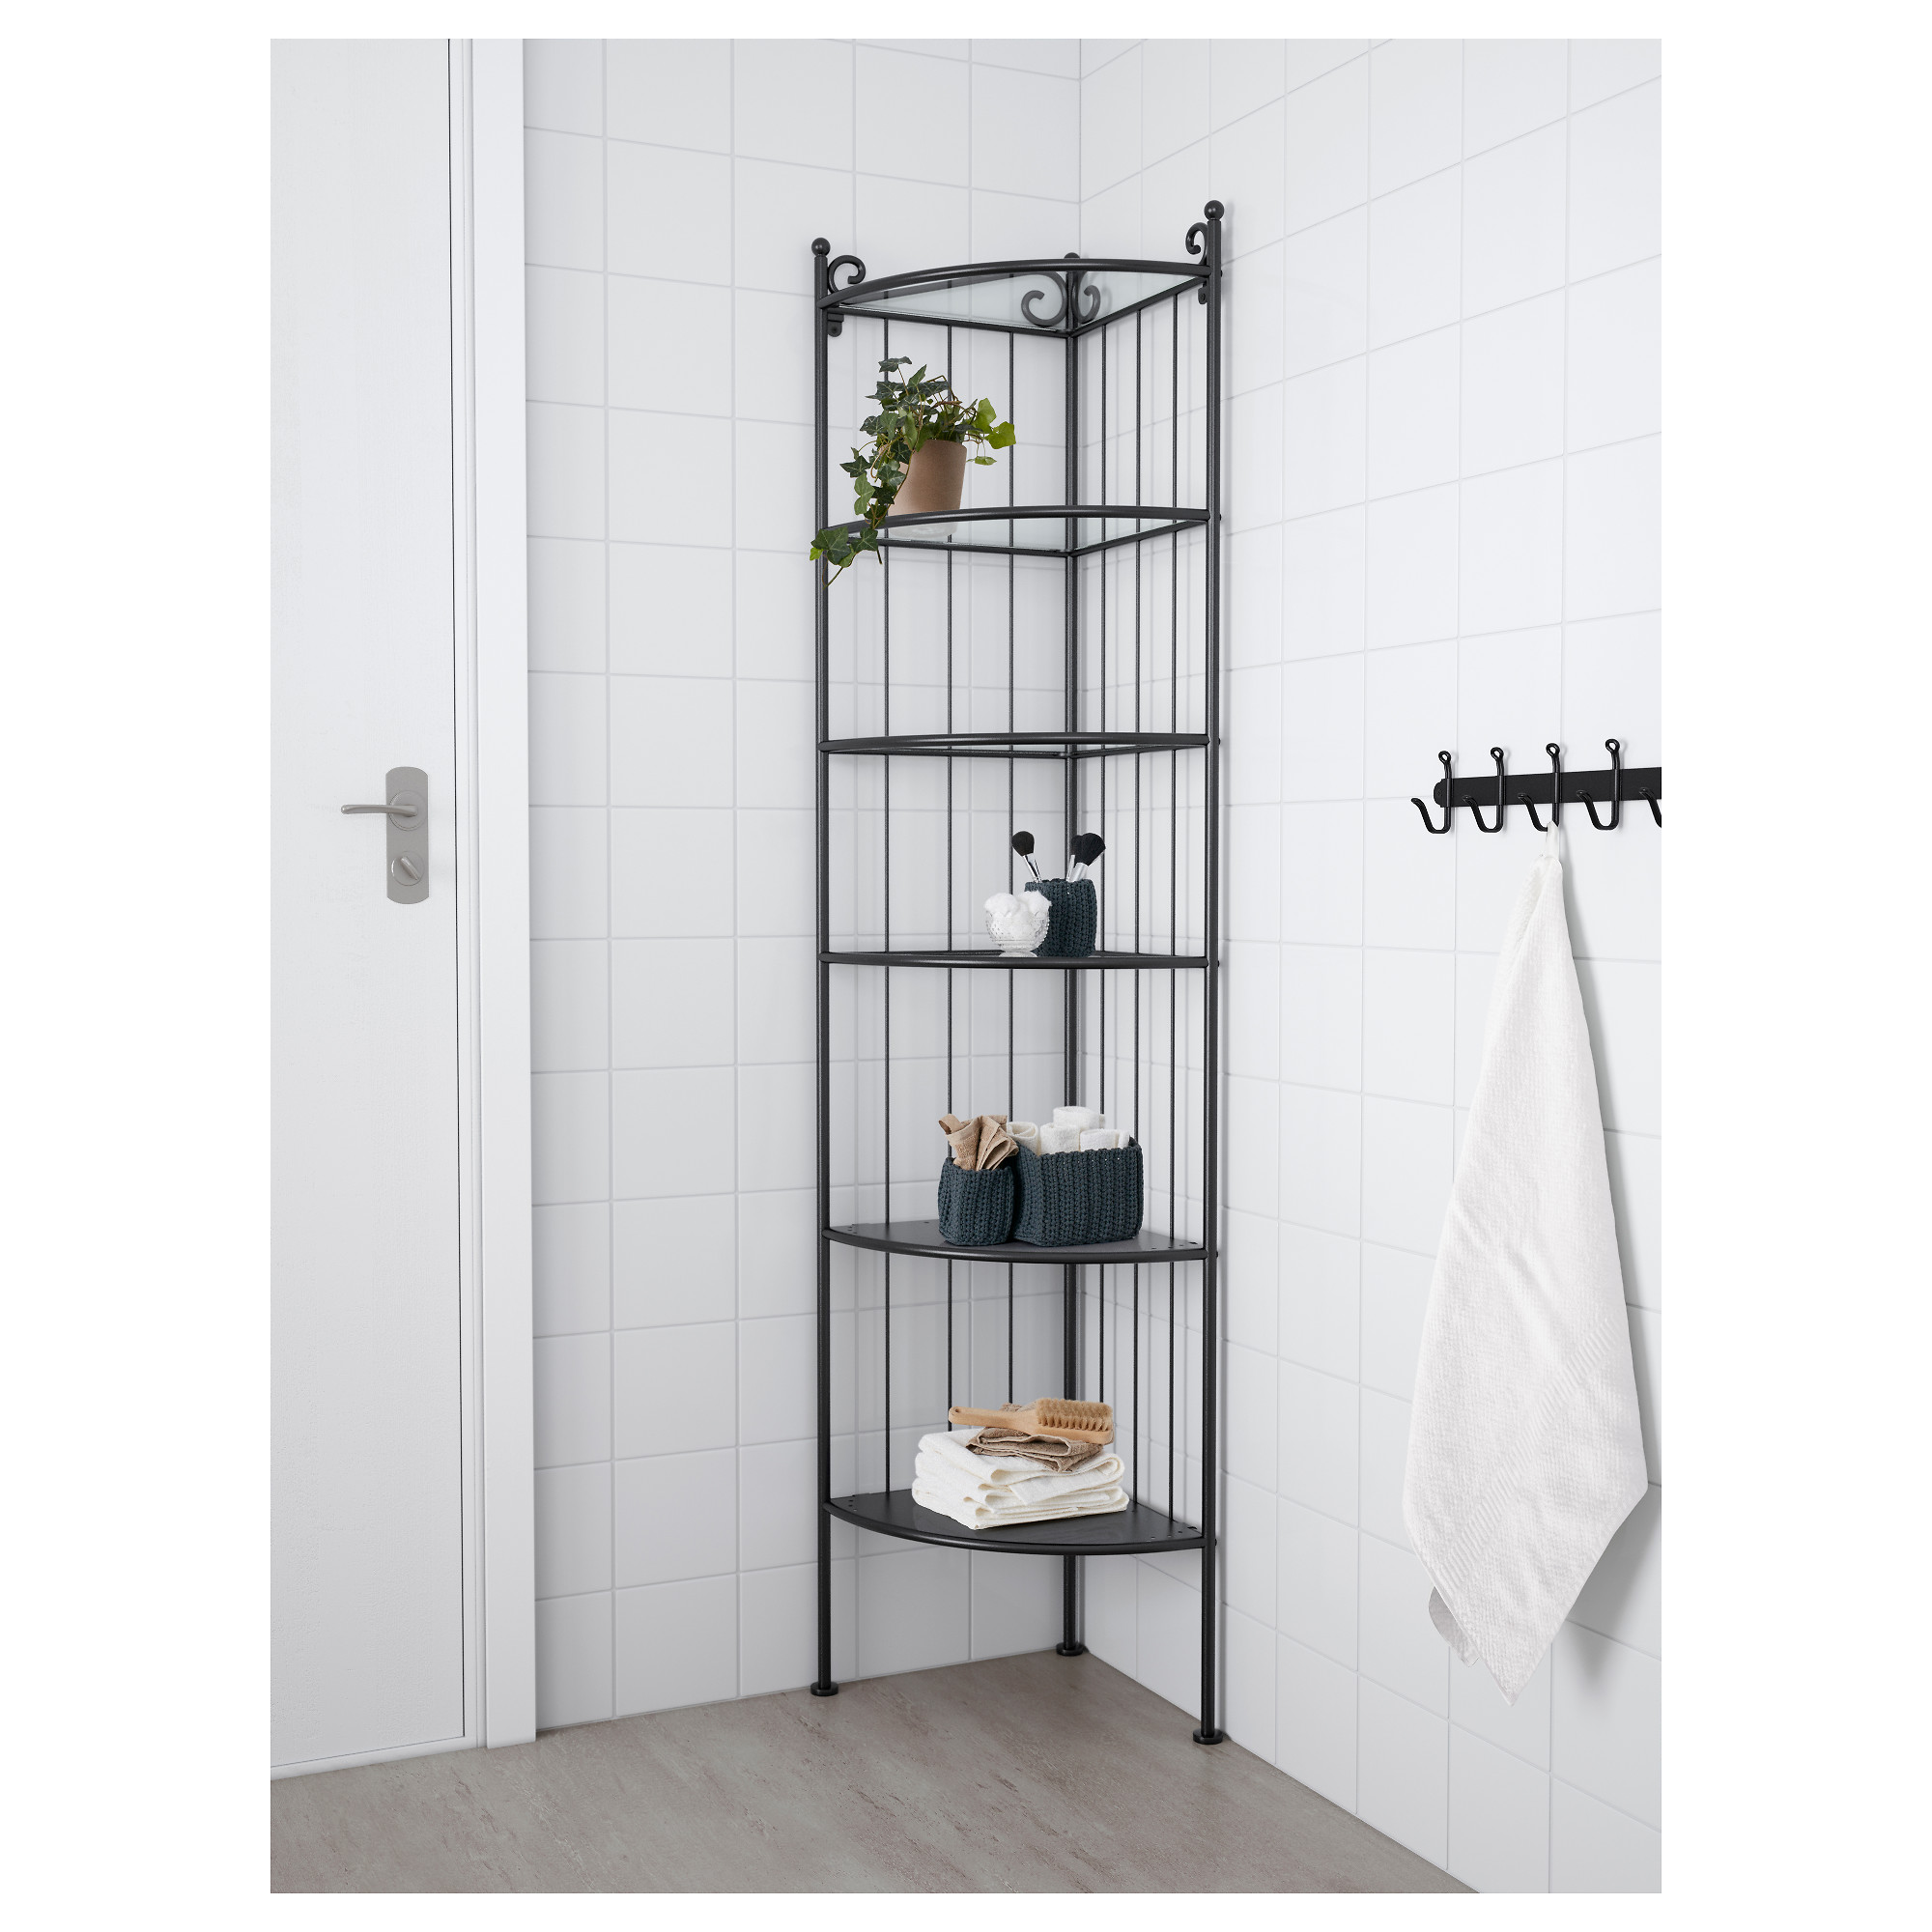 rÖnnskÄr corner shelf unit  ikea -